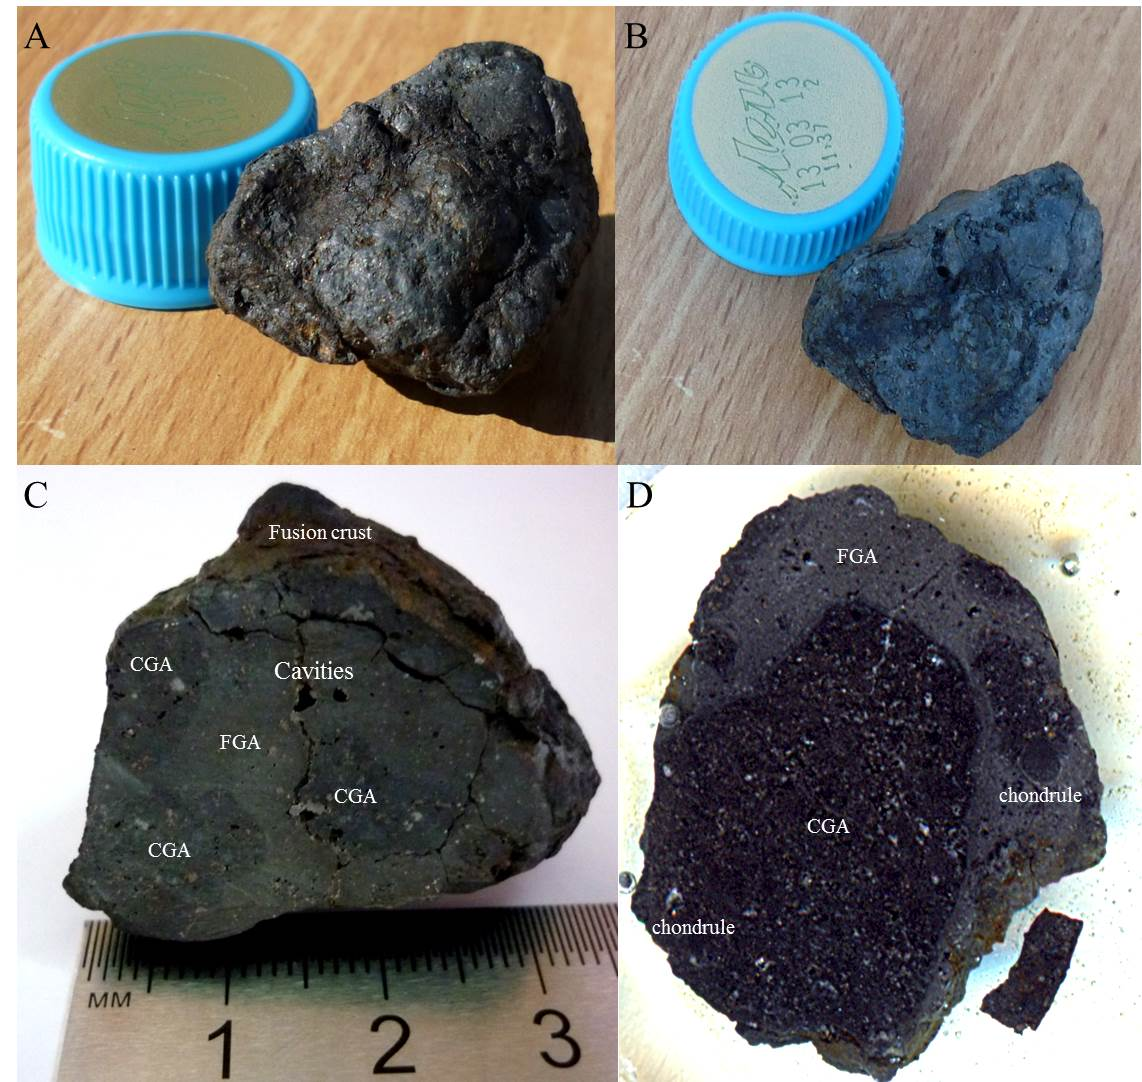 Meteorites from Russian Meteor Explosion Reveal Signs of Cosmic Crashes